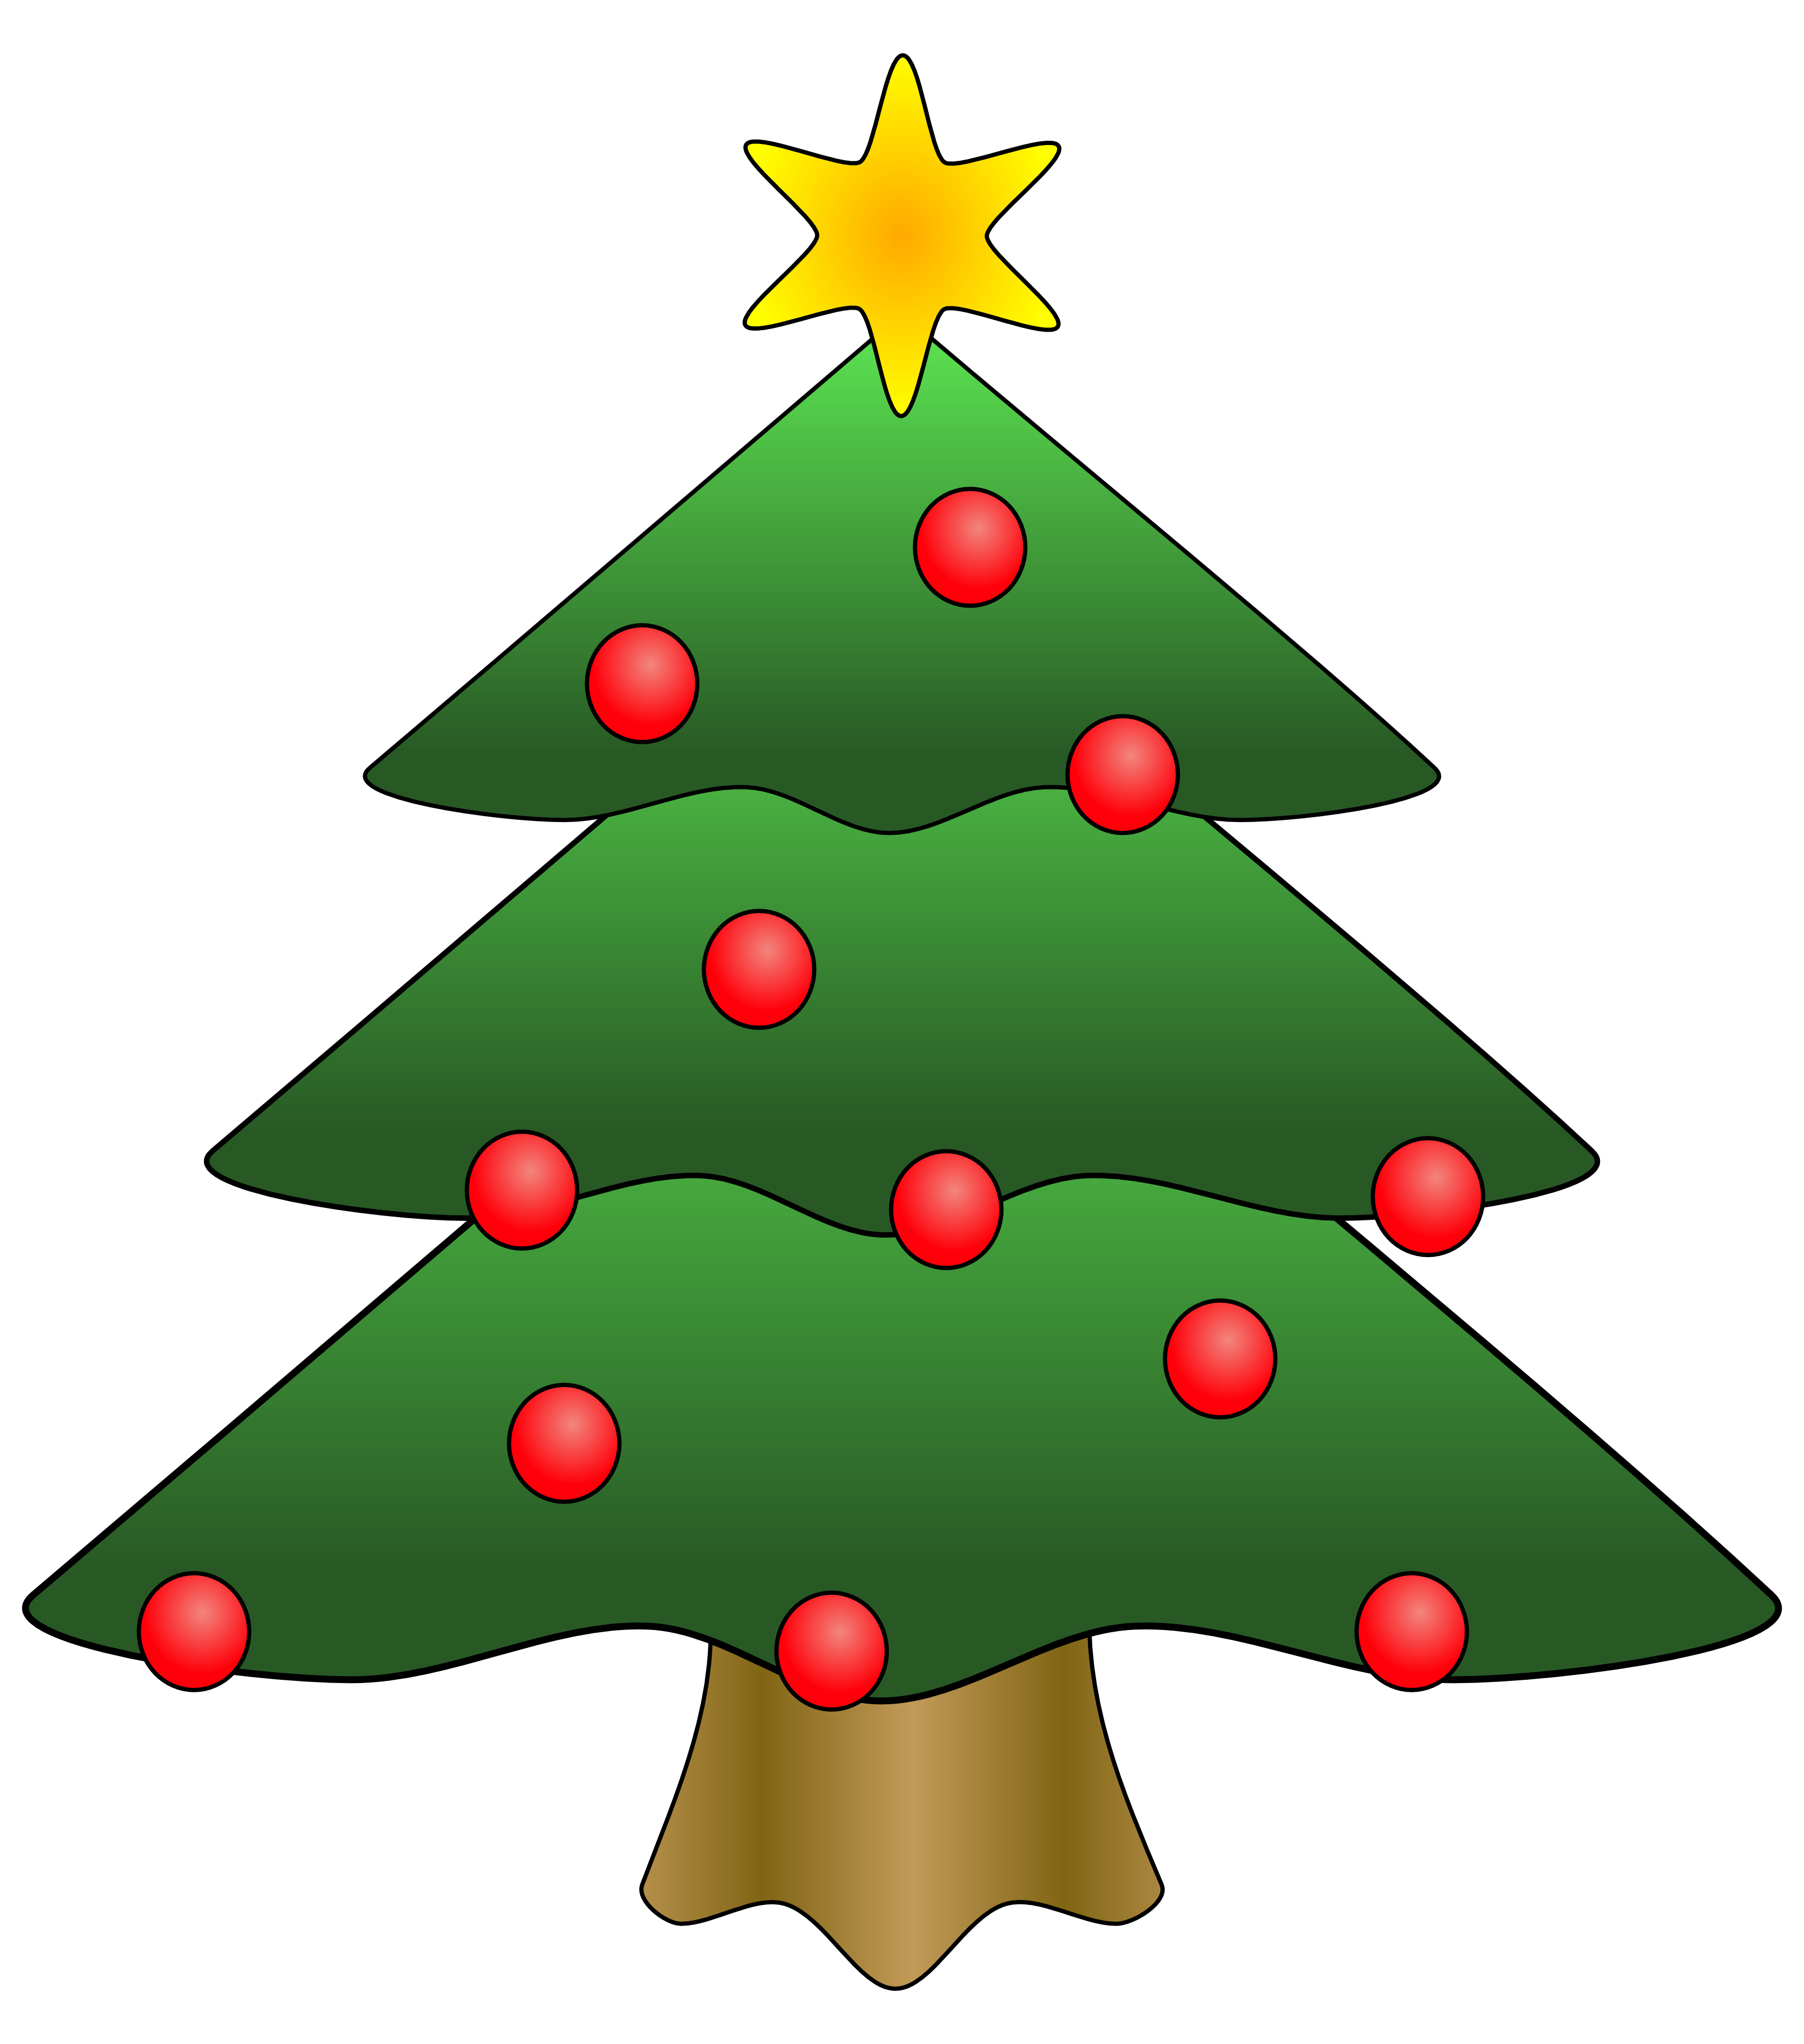 Clipart Christmas Tree With Presents-clipart christmas tree with presents-12